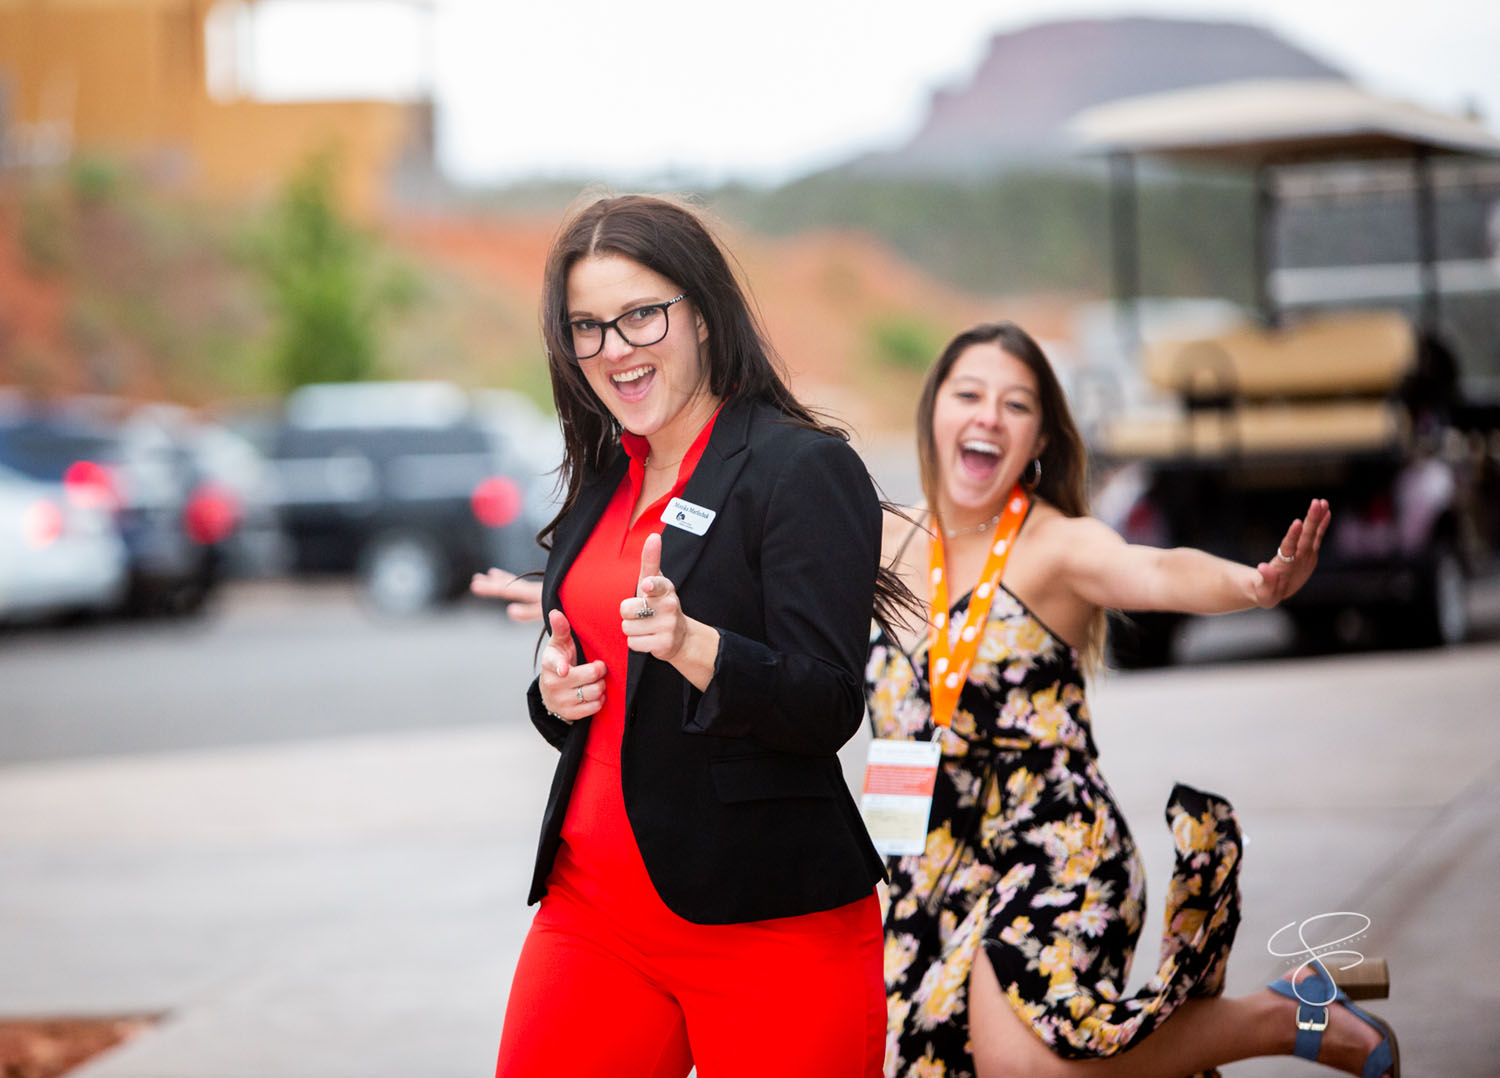 The 2019 Copper Ball, themed Tapas on the Rocks, was held on Sunday, May 19, 2019 at Seven Canyons Golf Club in Sedona, Arizona. Photo by Sean Openshaw / www.SeanOpenshaw.com